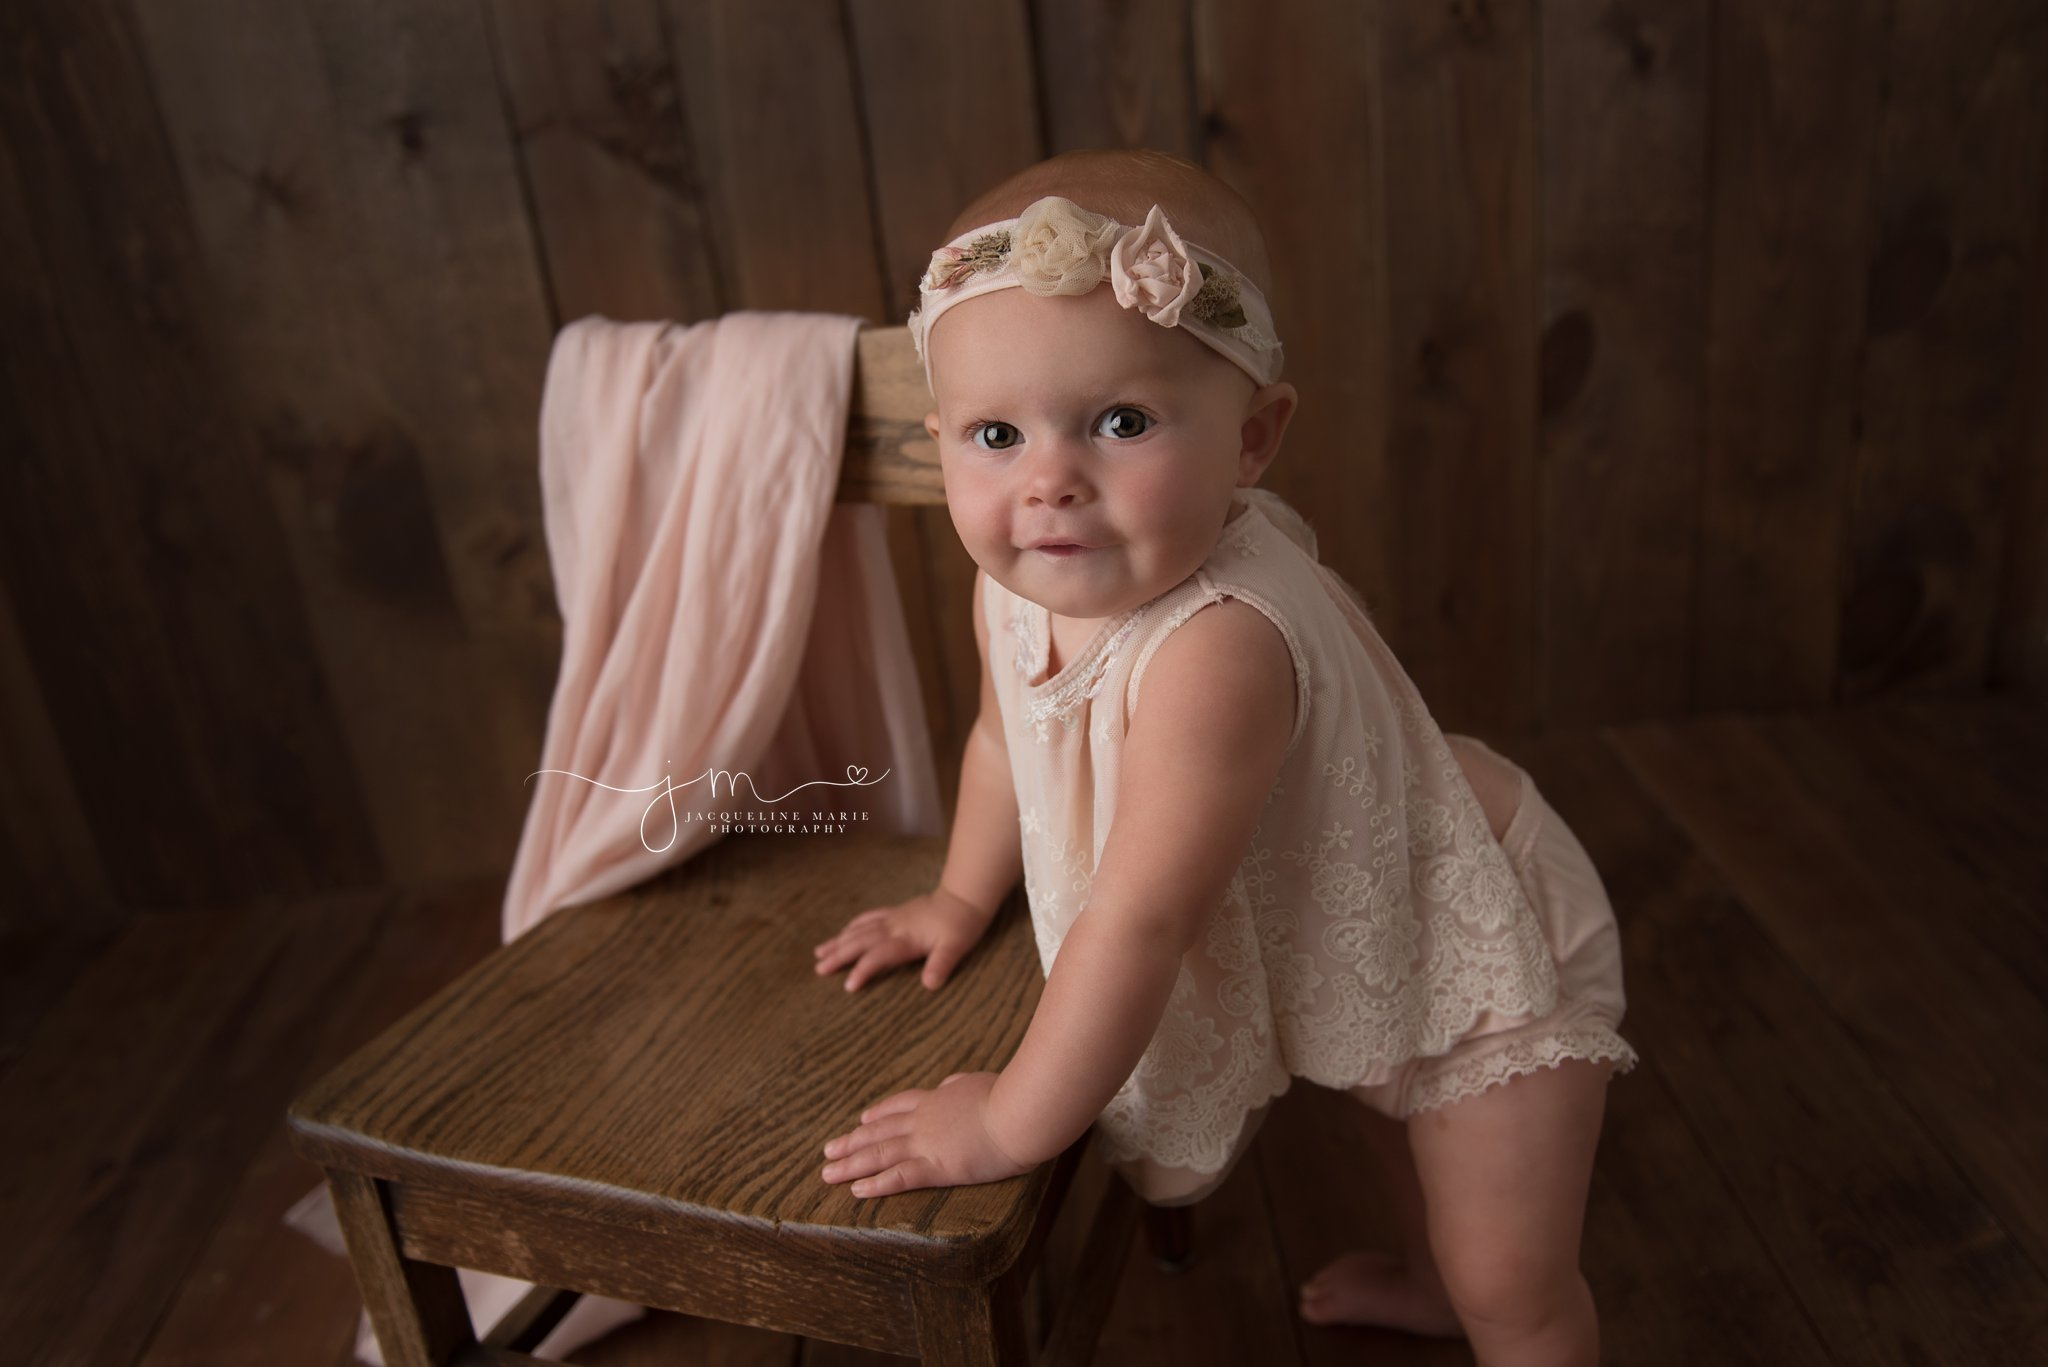 1 year old celebrates first birthday at jacqueline marie photography studio in columbus ohio